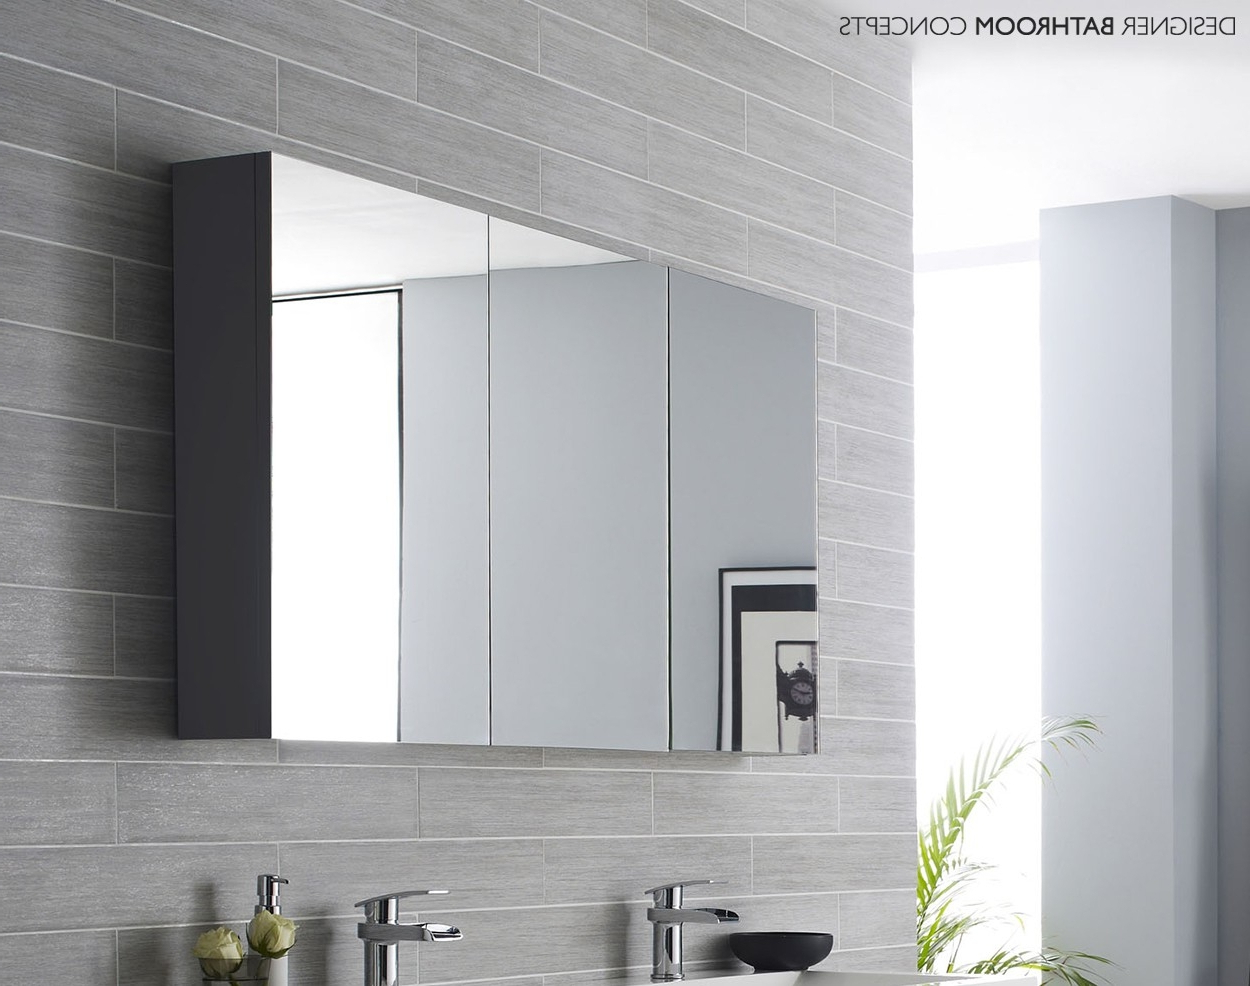 Bathroom Wall Mirror Cabinets Within Popular Top 30 Beautiful Bathroom Mirror Cabinet With Light Modern Vanity (View 17 of 20)